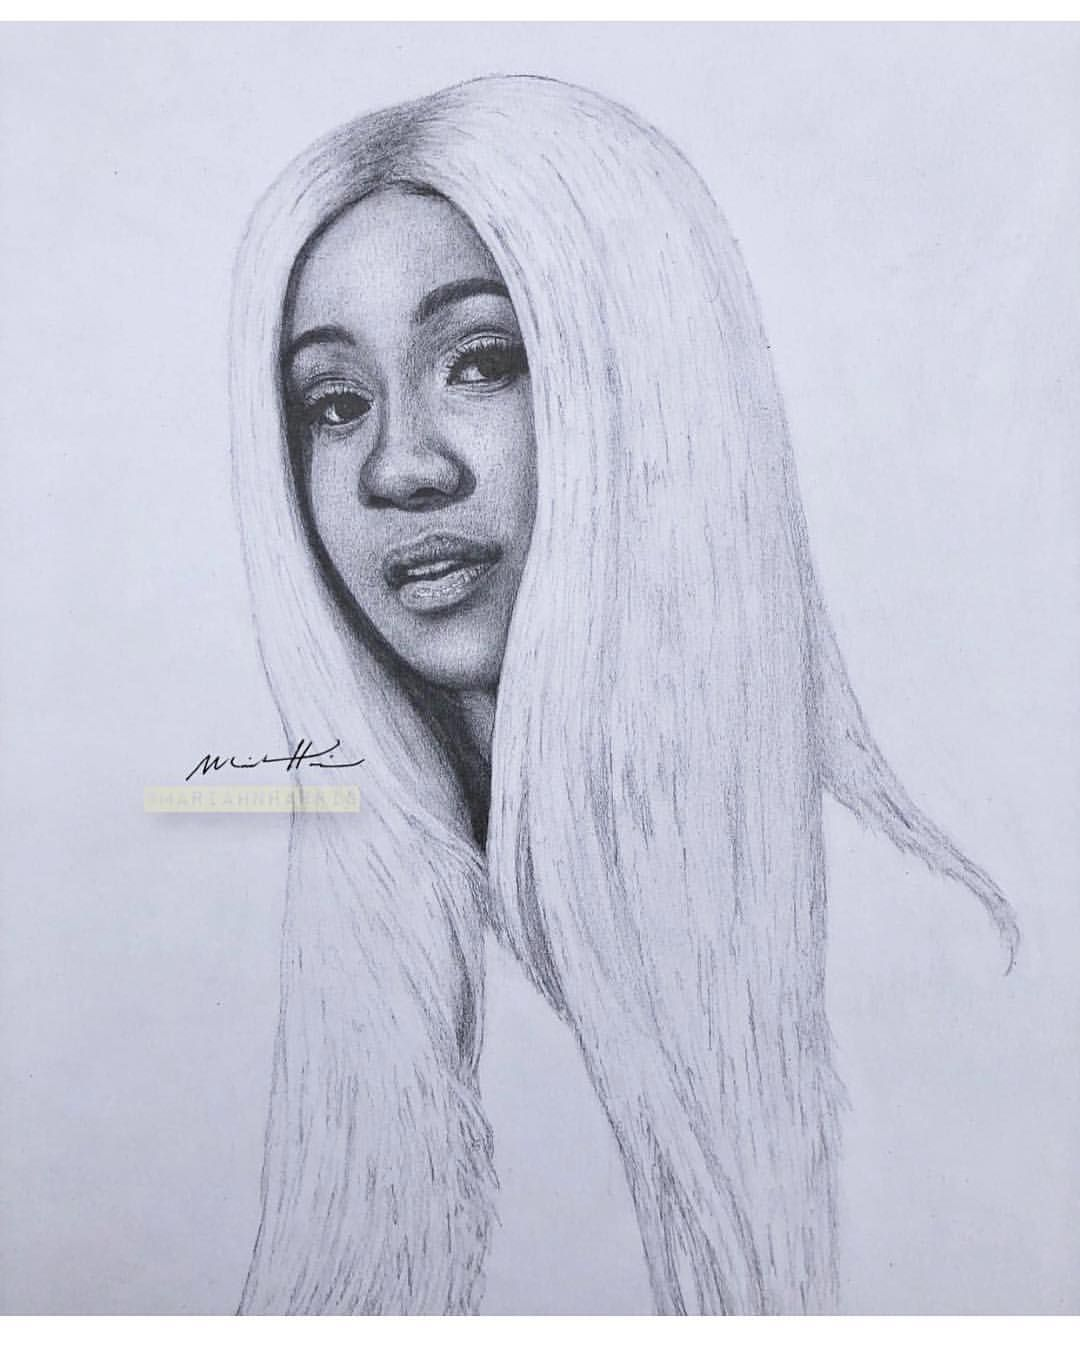 Cardi B Drawing : cardi, drawing, Cardi, Celebrity, Drawings,